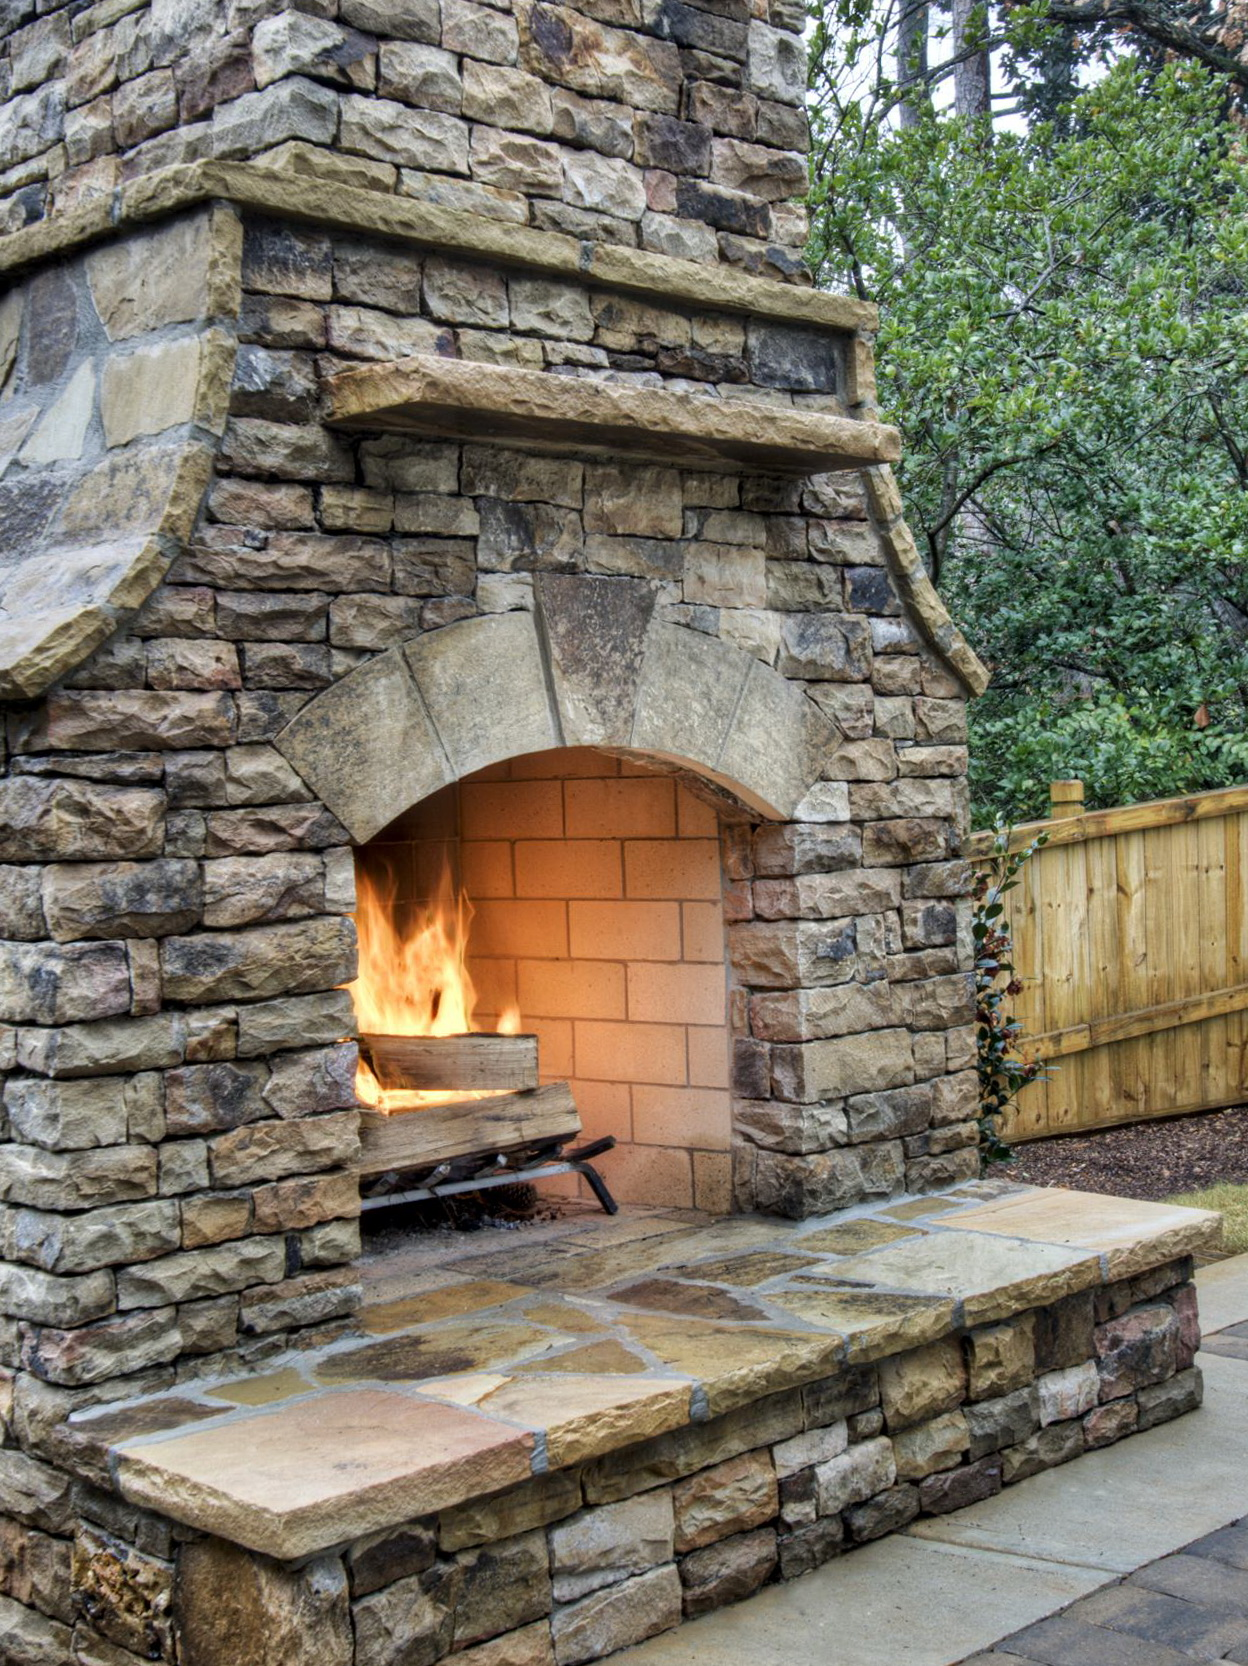 Building outdoor fireplace cinder block home design ideas for Outdoor fireplace designs plans